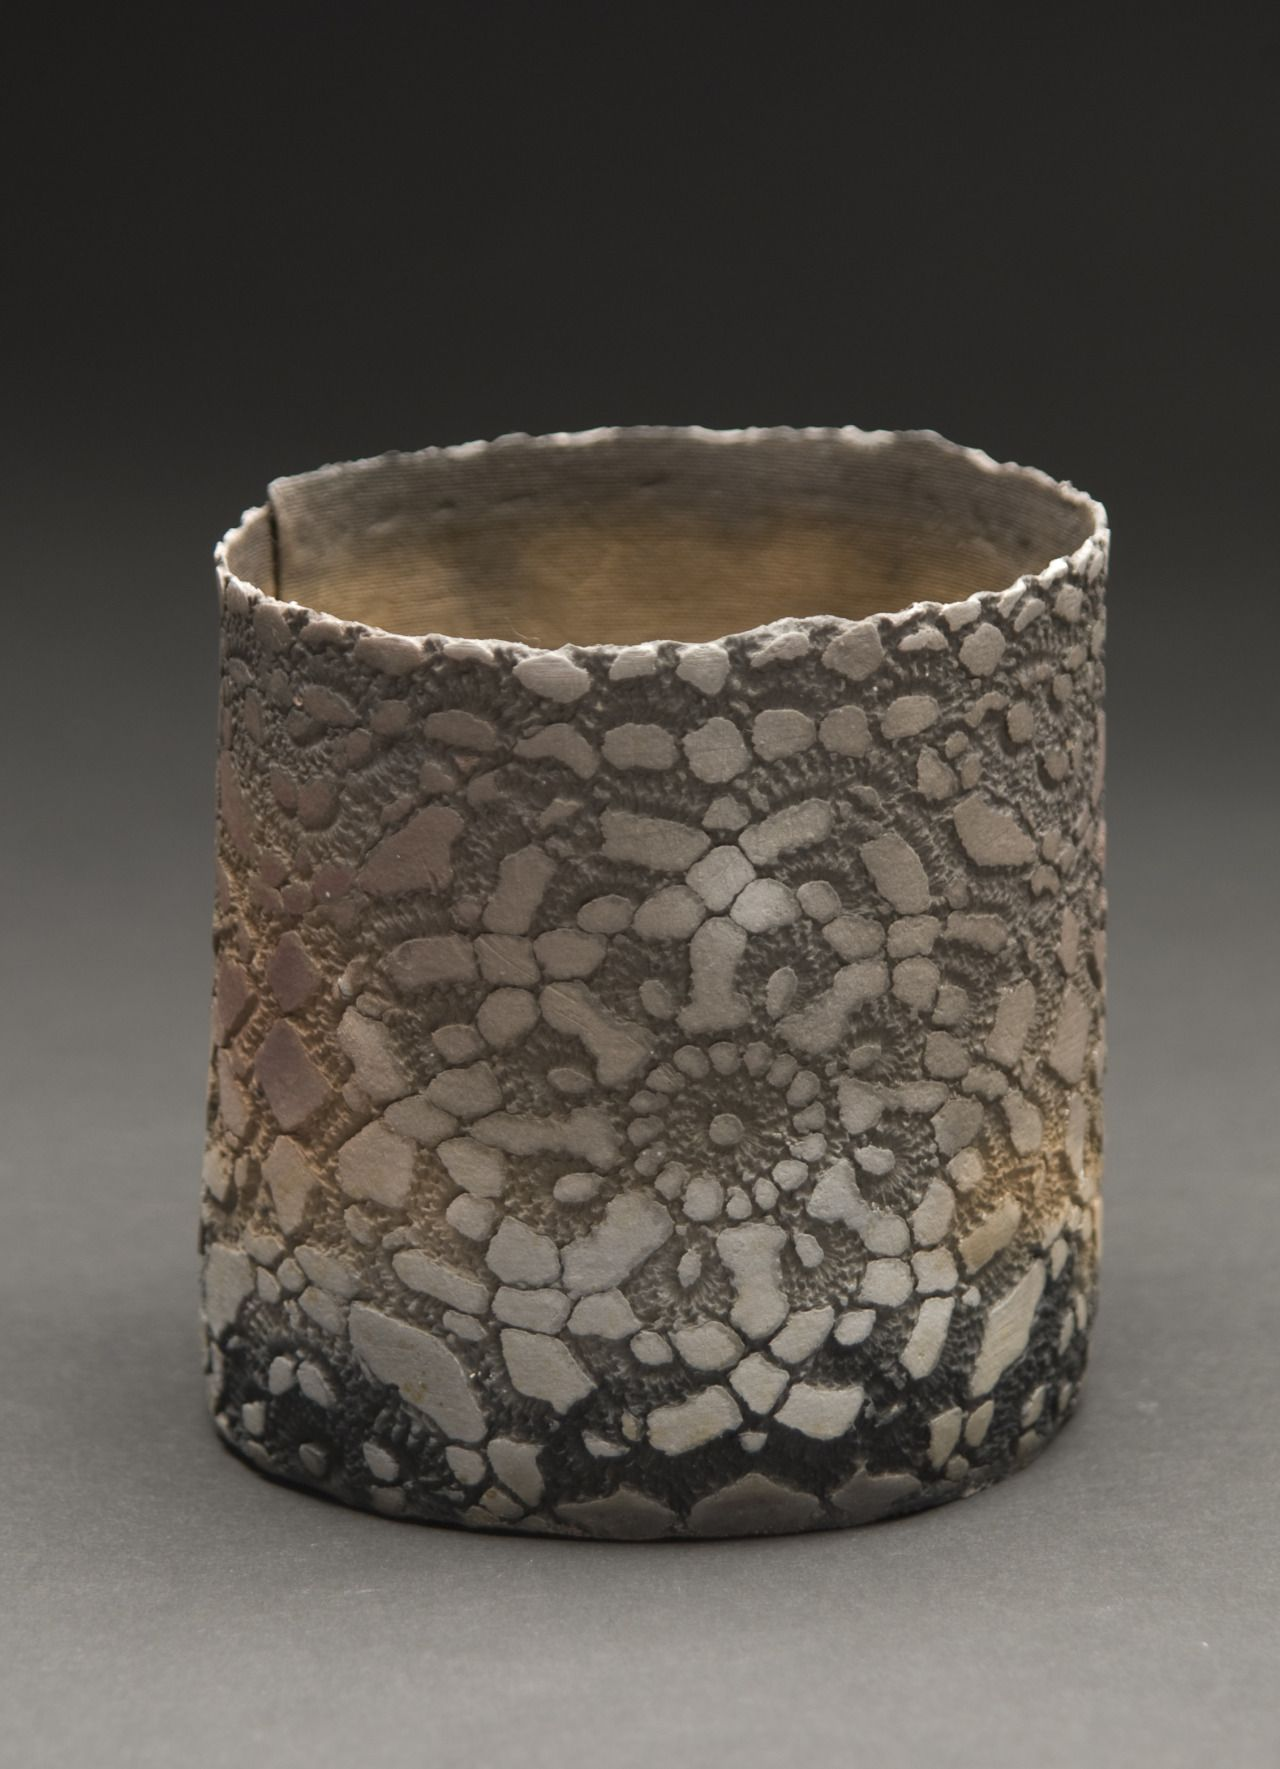 cavinmorrisgallery:  Deirdre Hawthorne The Quiet II, 2011 Saggar fired earthenware 3.25 x 3.5 inches 8.3 x 8.9 cm  DH 30